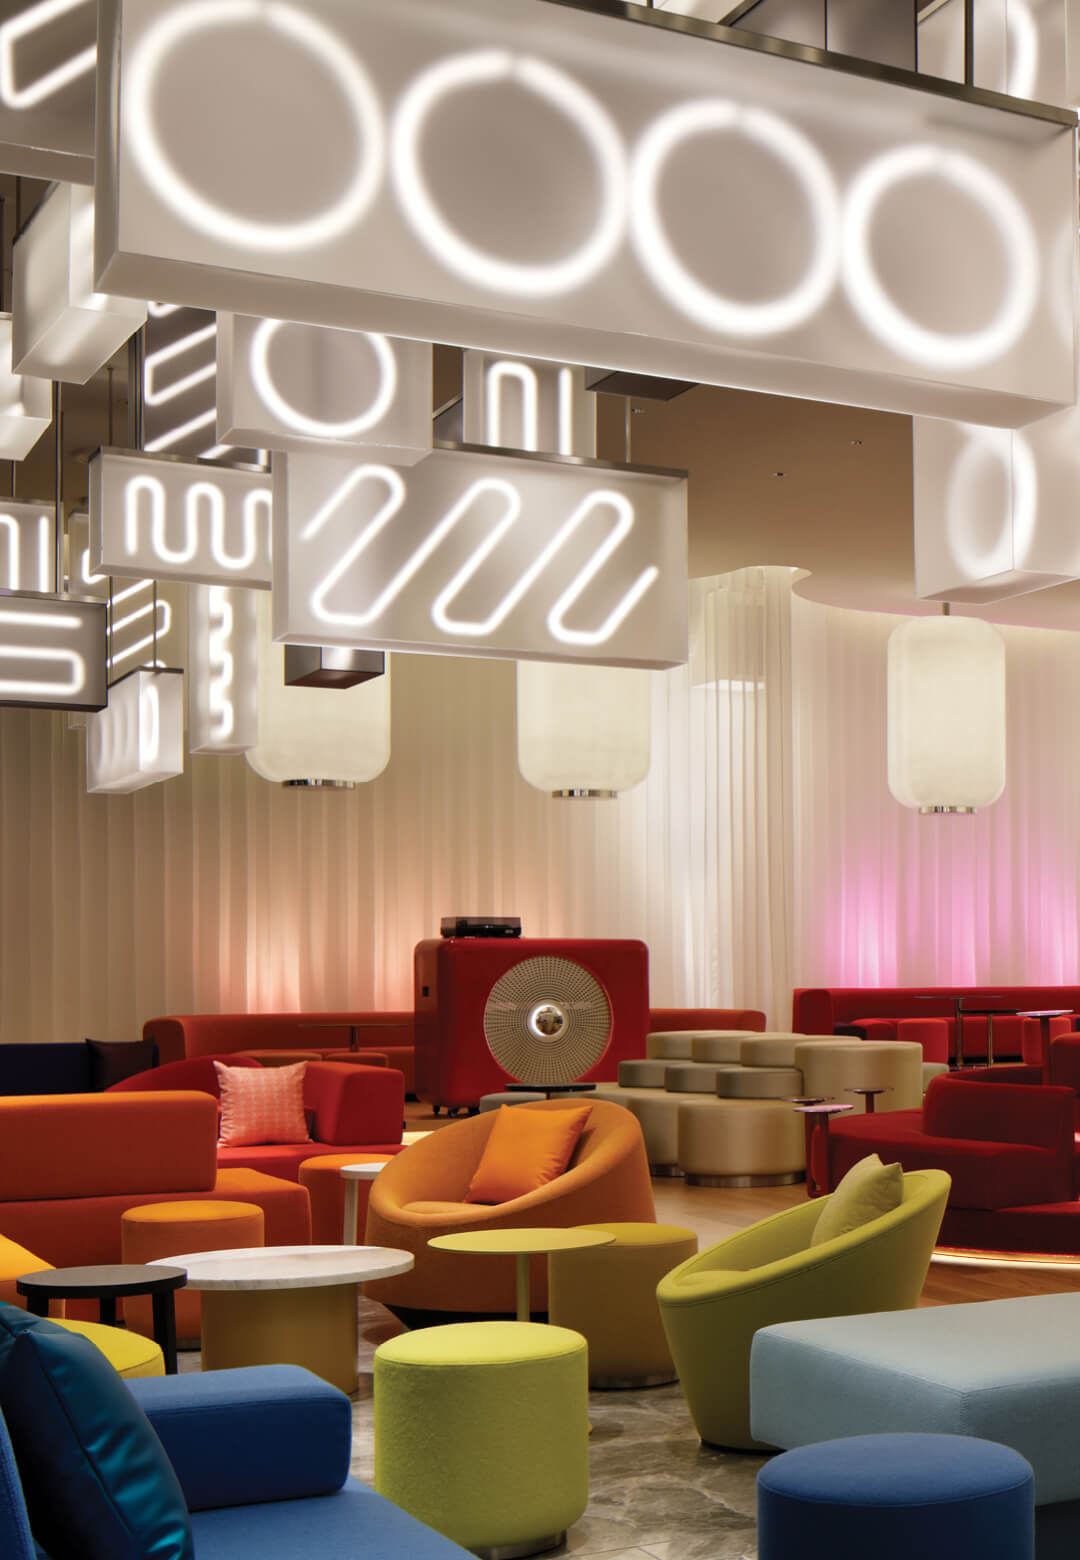 Amsterdam-based Concrete Architectural Associates has designed the interiors for the new W Hotel in Osaka, Japan   W Hotel Osaka by Concrete   STIRworld